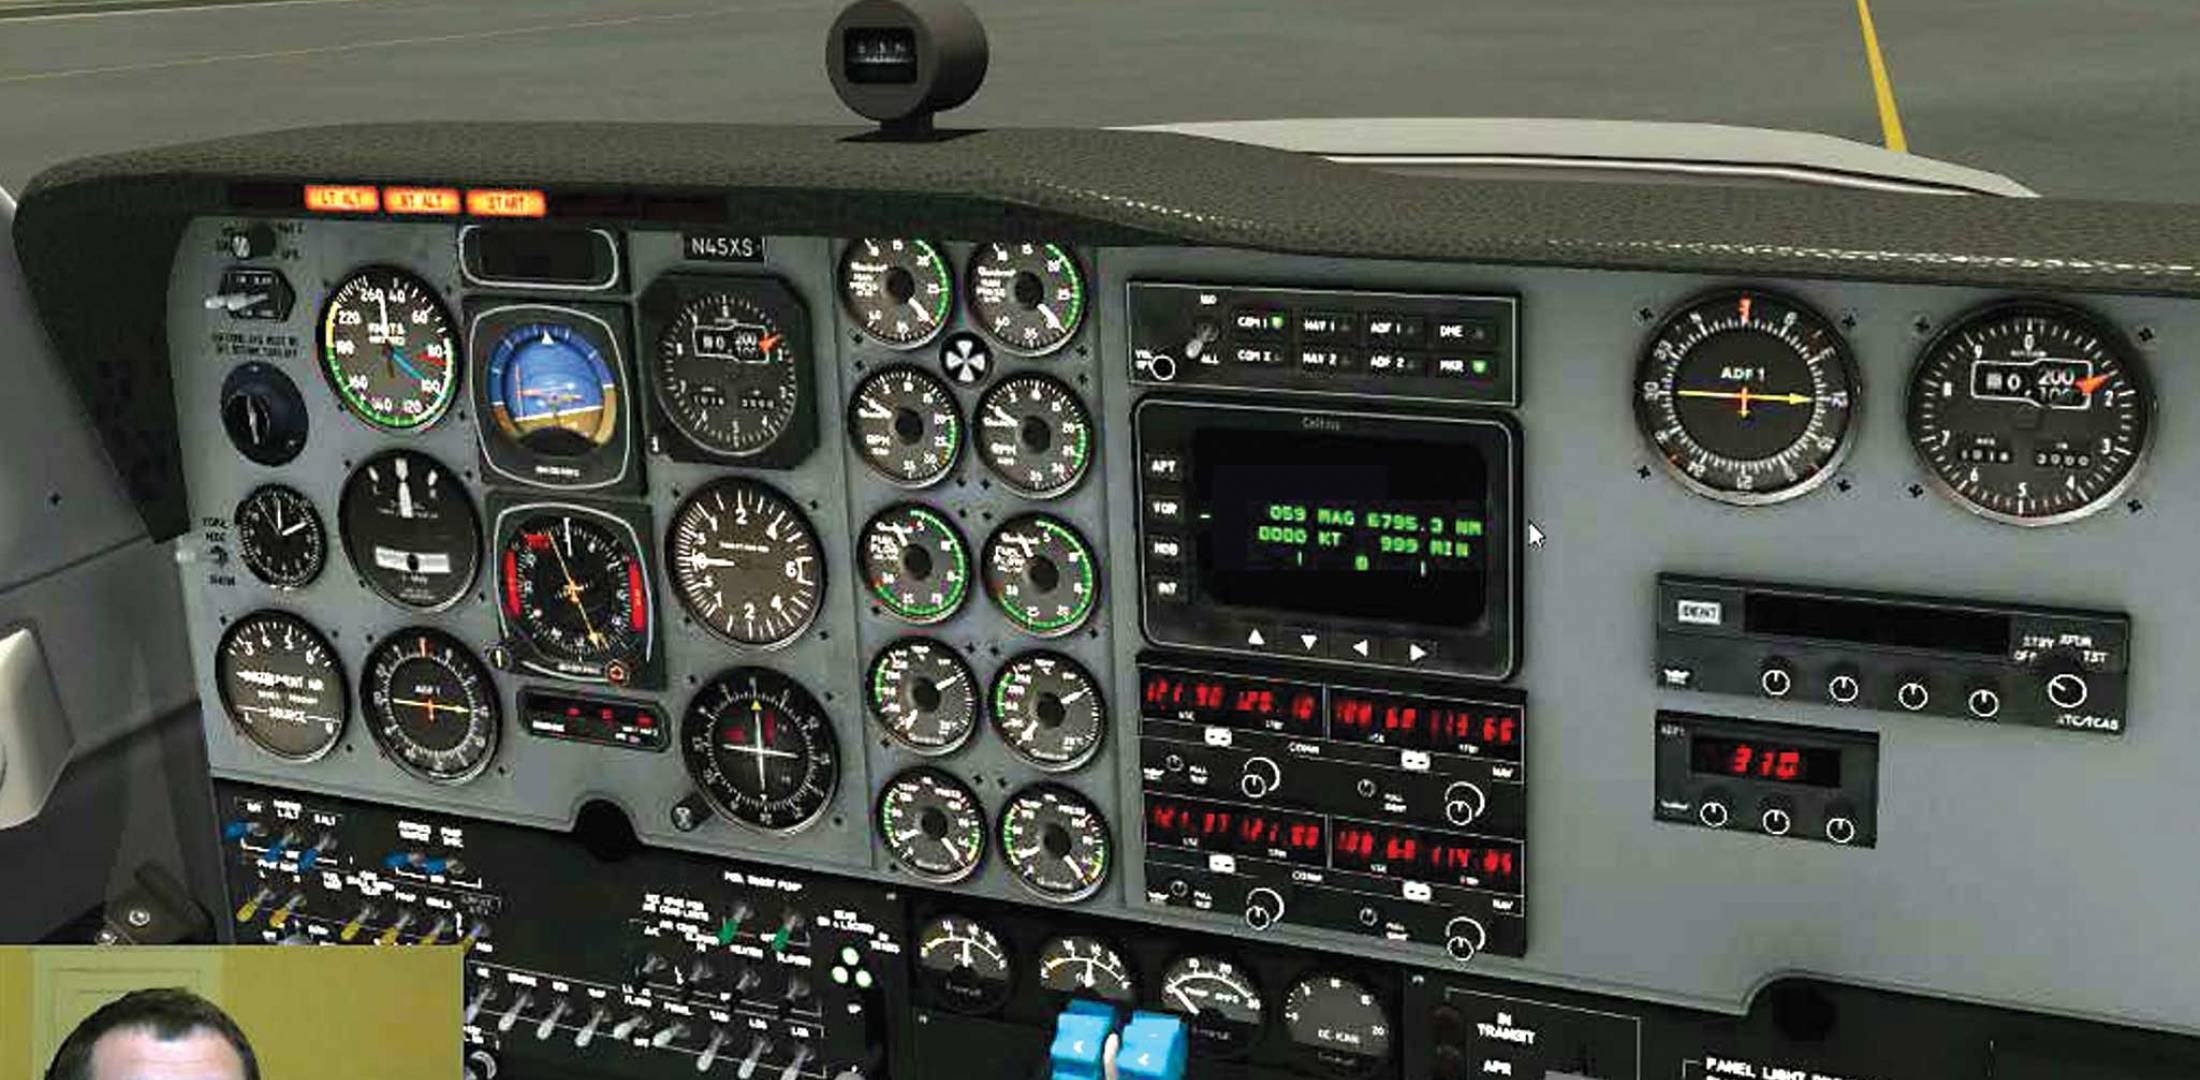 Shared Cockpit Allows Simulating Pilots To 'Fly' Together